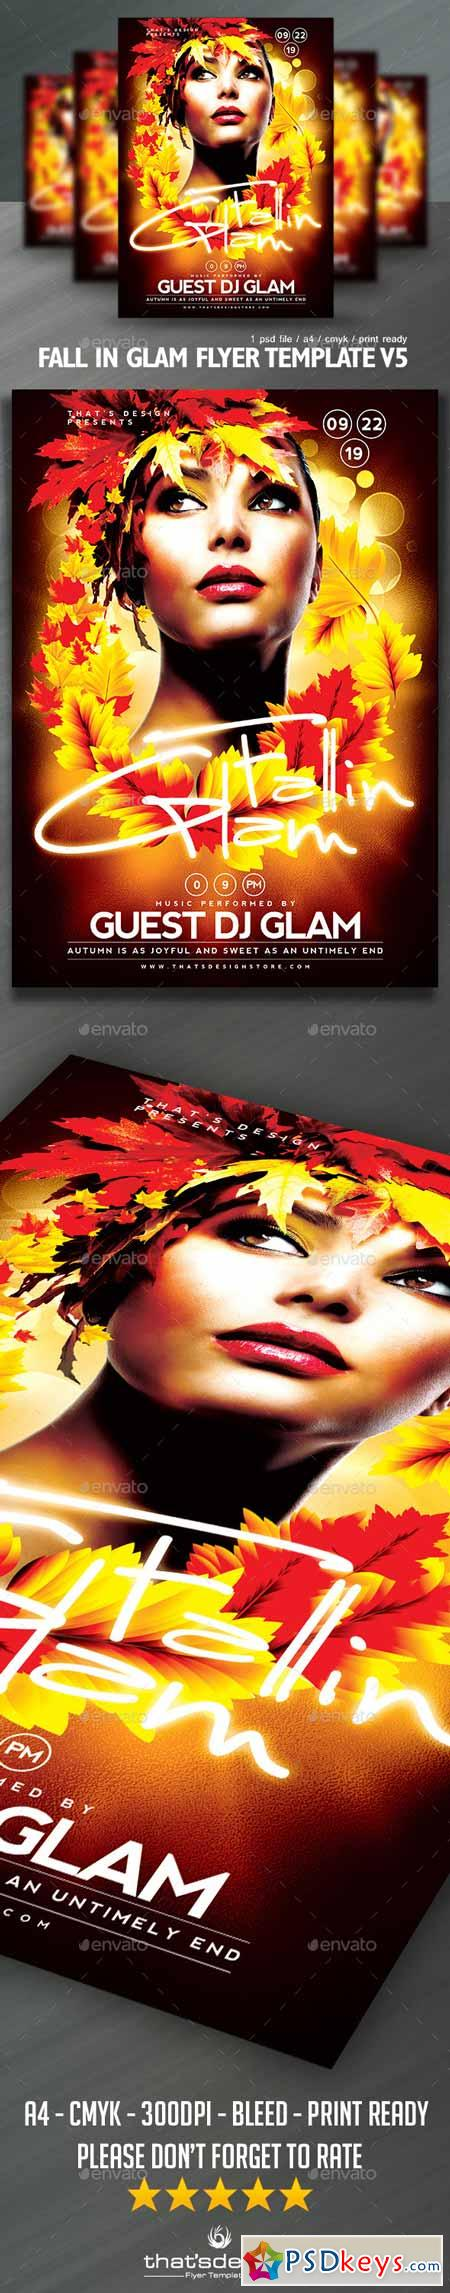 Fall in Glam Flyer Template V5 12991766